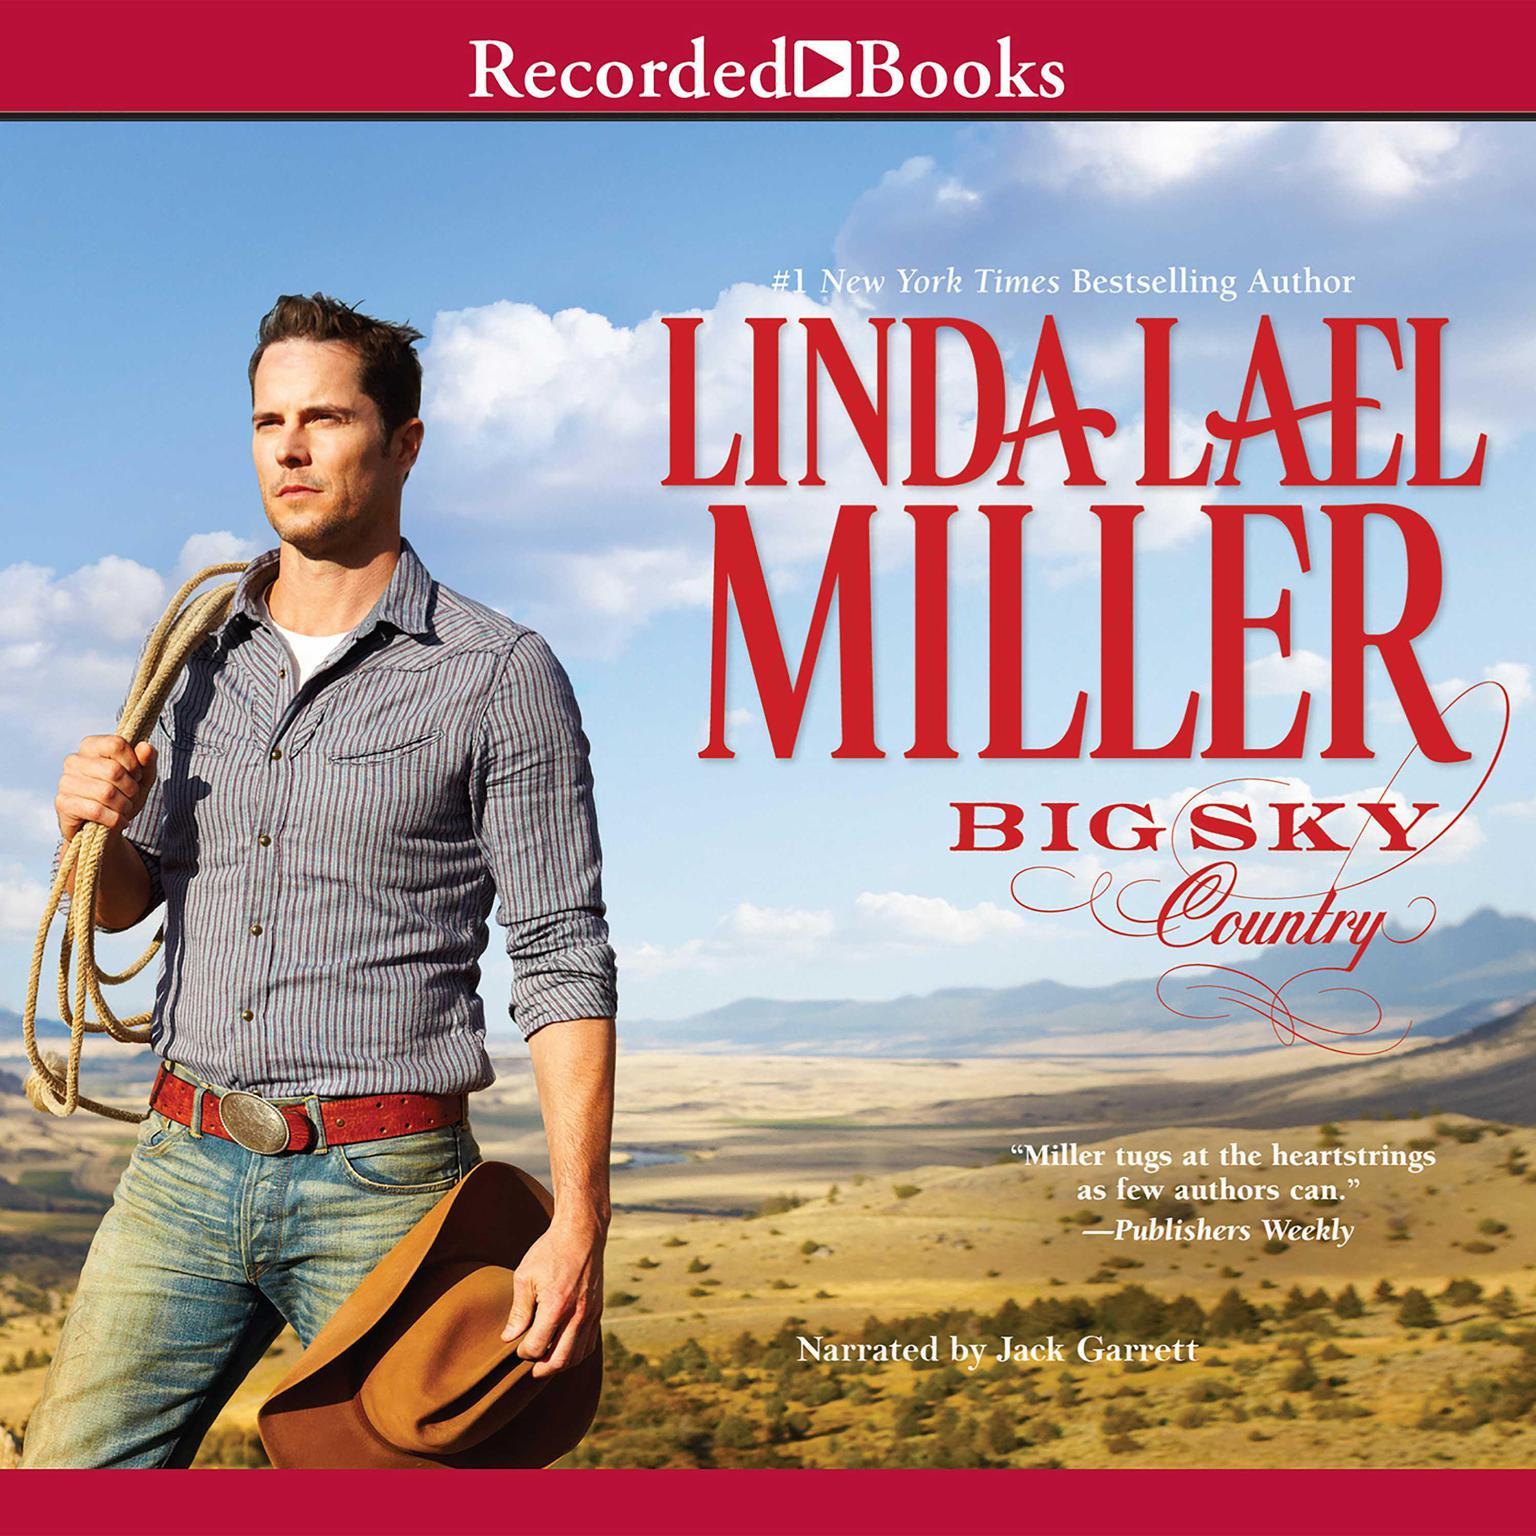 Printable Big Sky Country Audiobook Cover Art